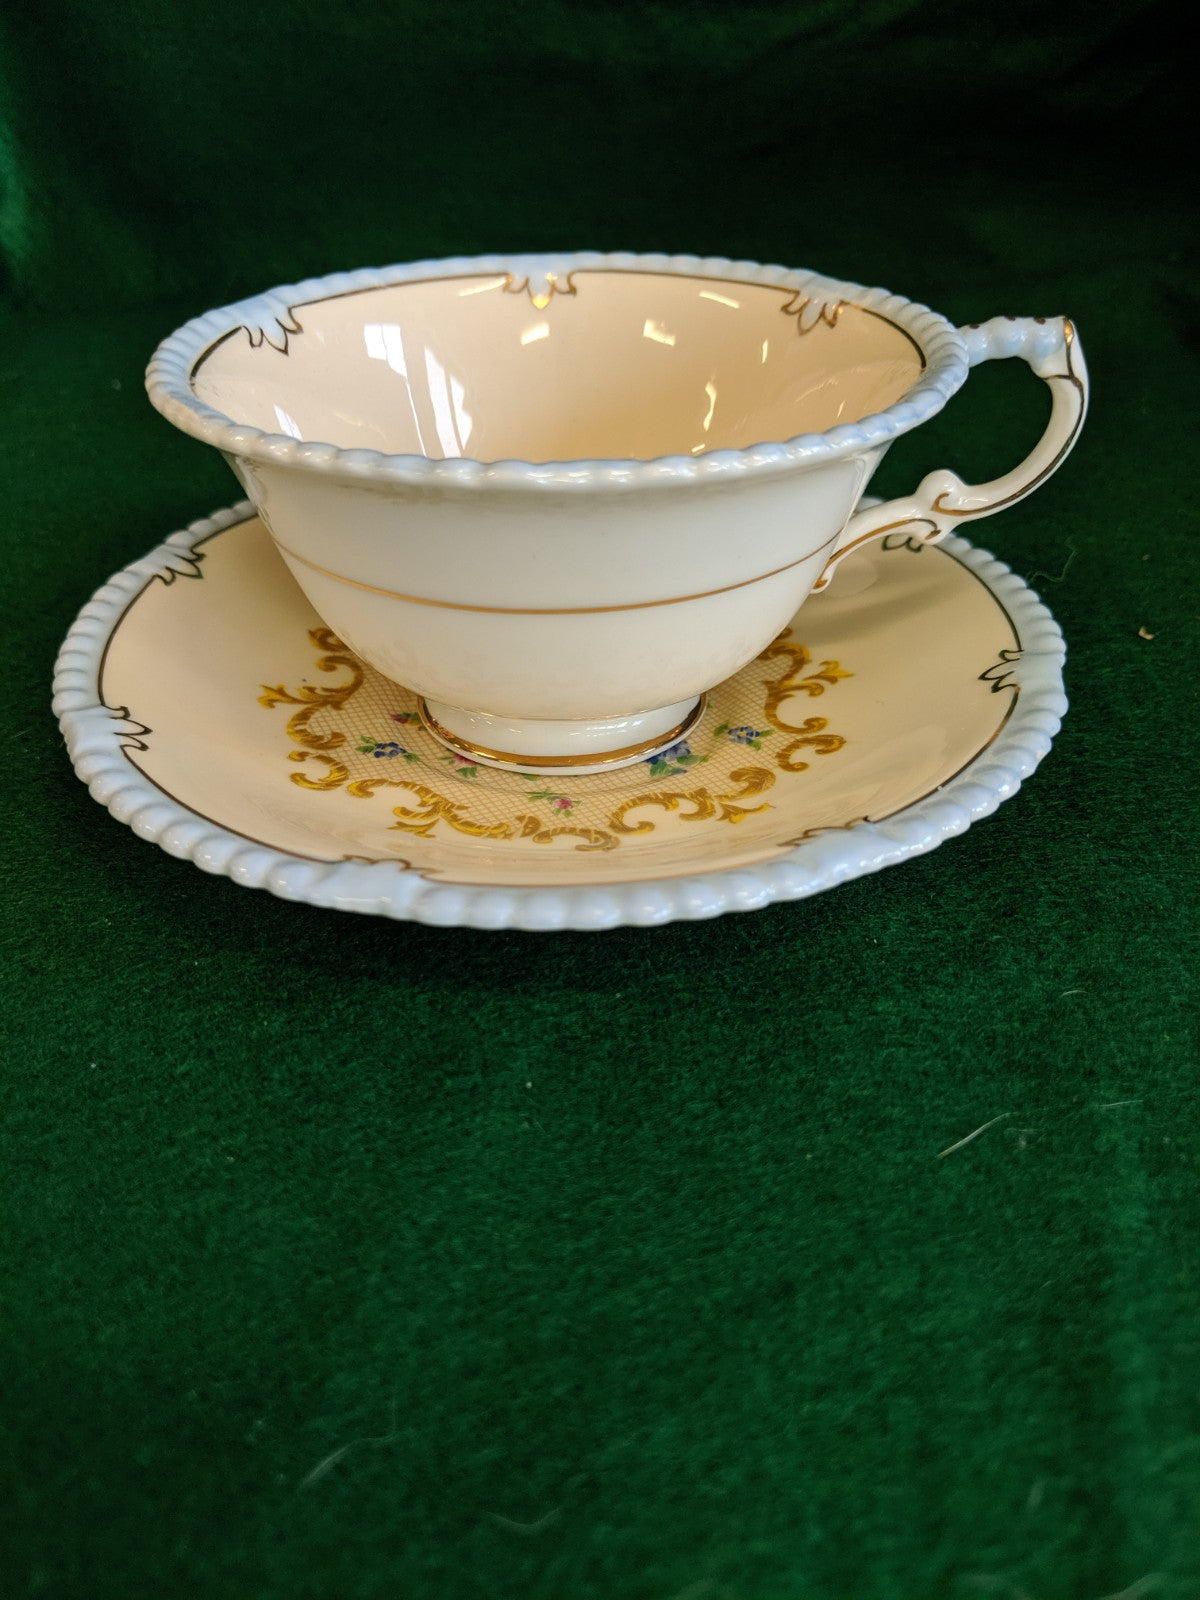 Vintage Paragon teacup and saucer, baby blue & roses